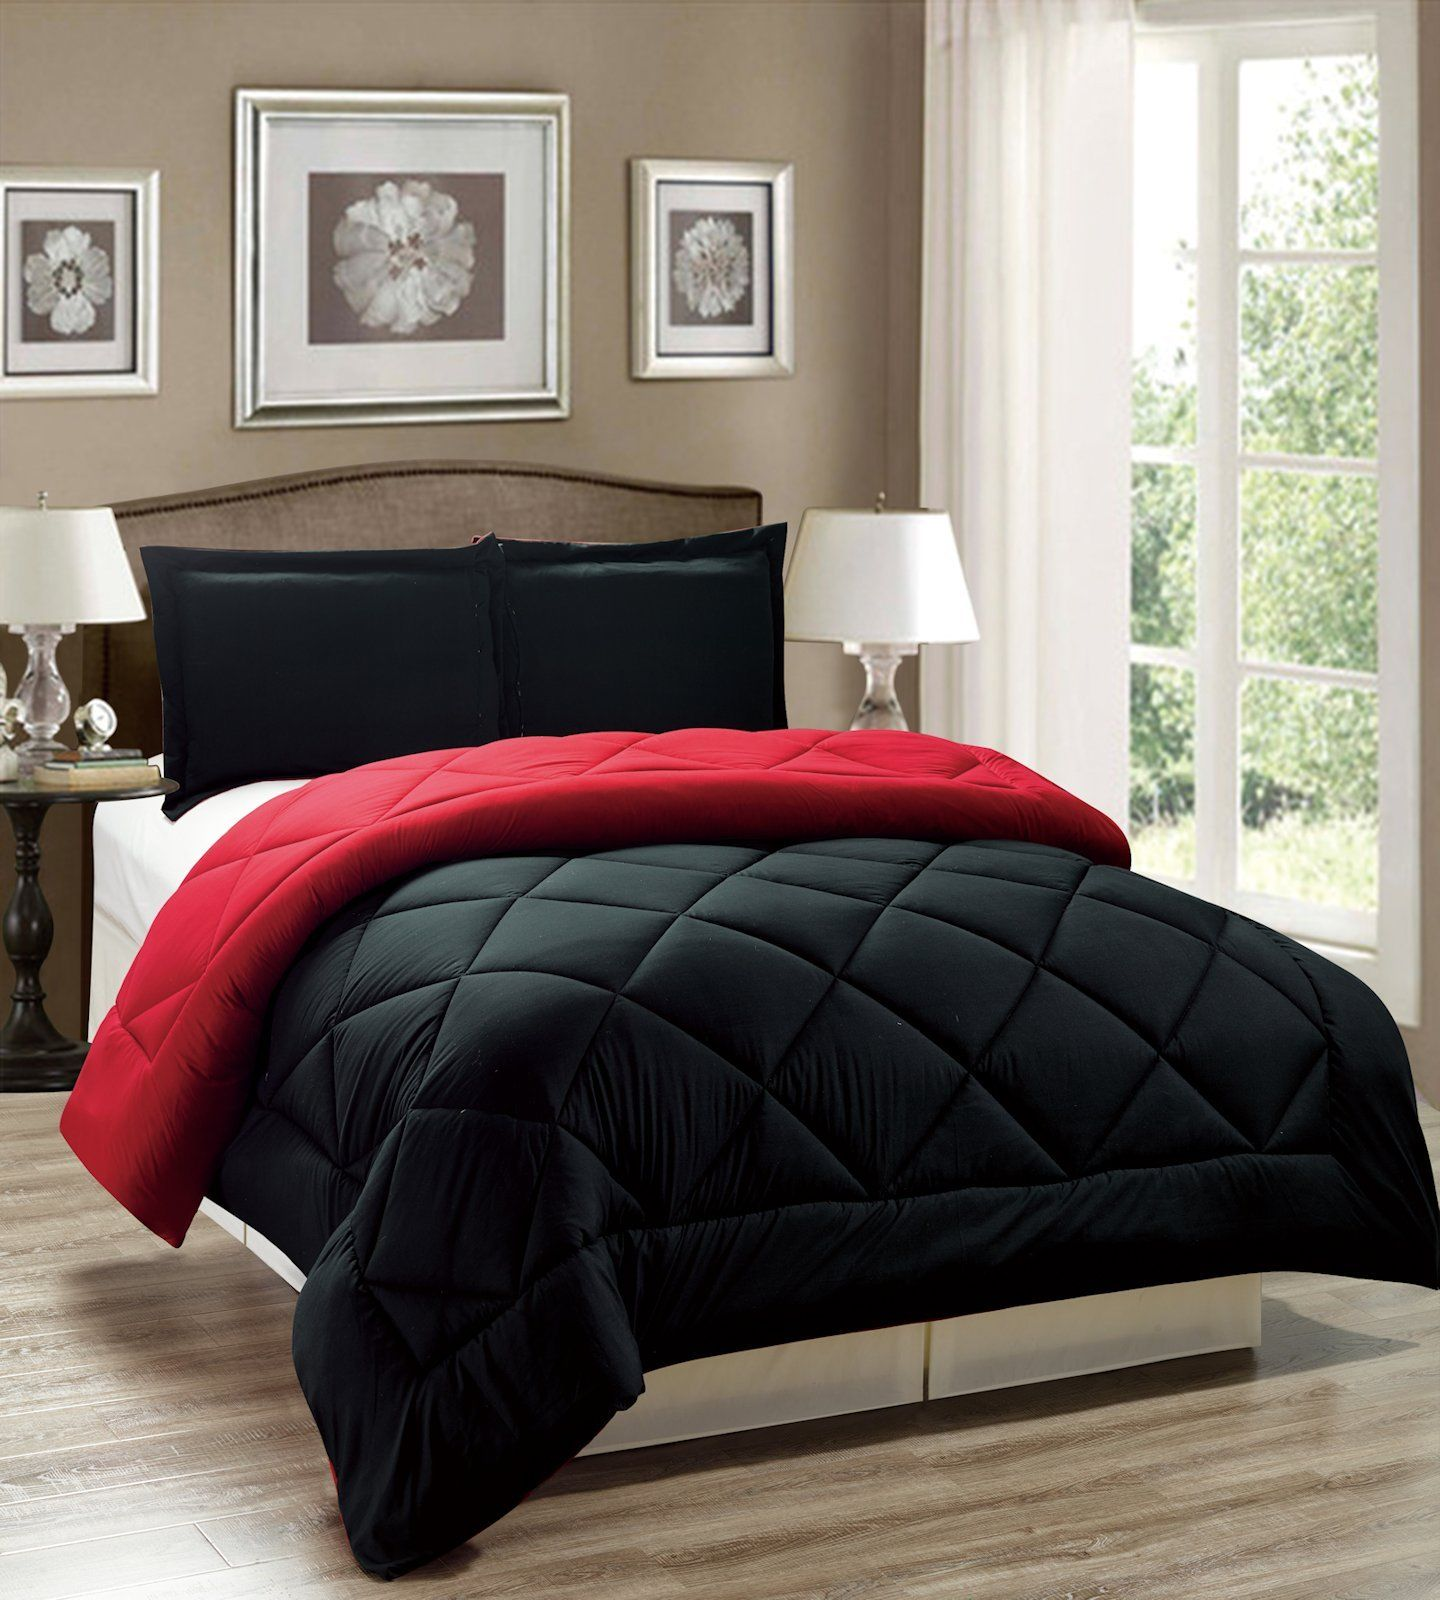 Black And Red Comforter Set Full